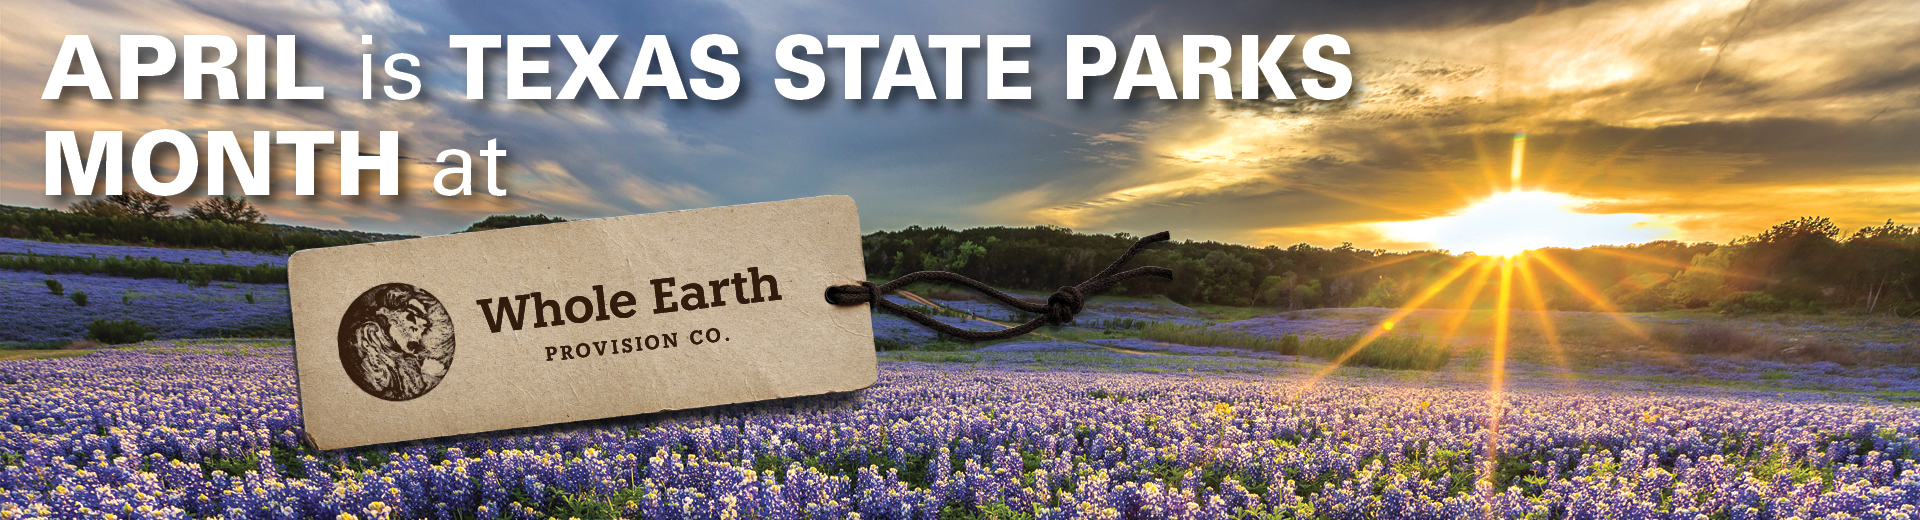 Image of sunrise over a beautiful field of bluebonnets in central Texas with the words April is Texas State Parks Month at Whole Earth Provision Co. on top